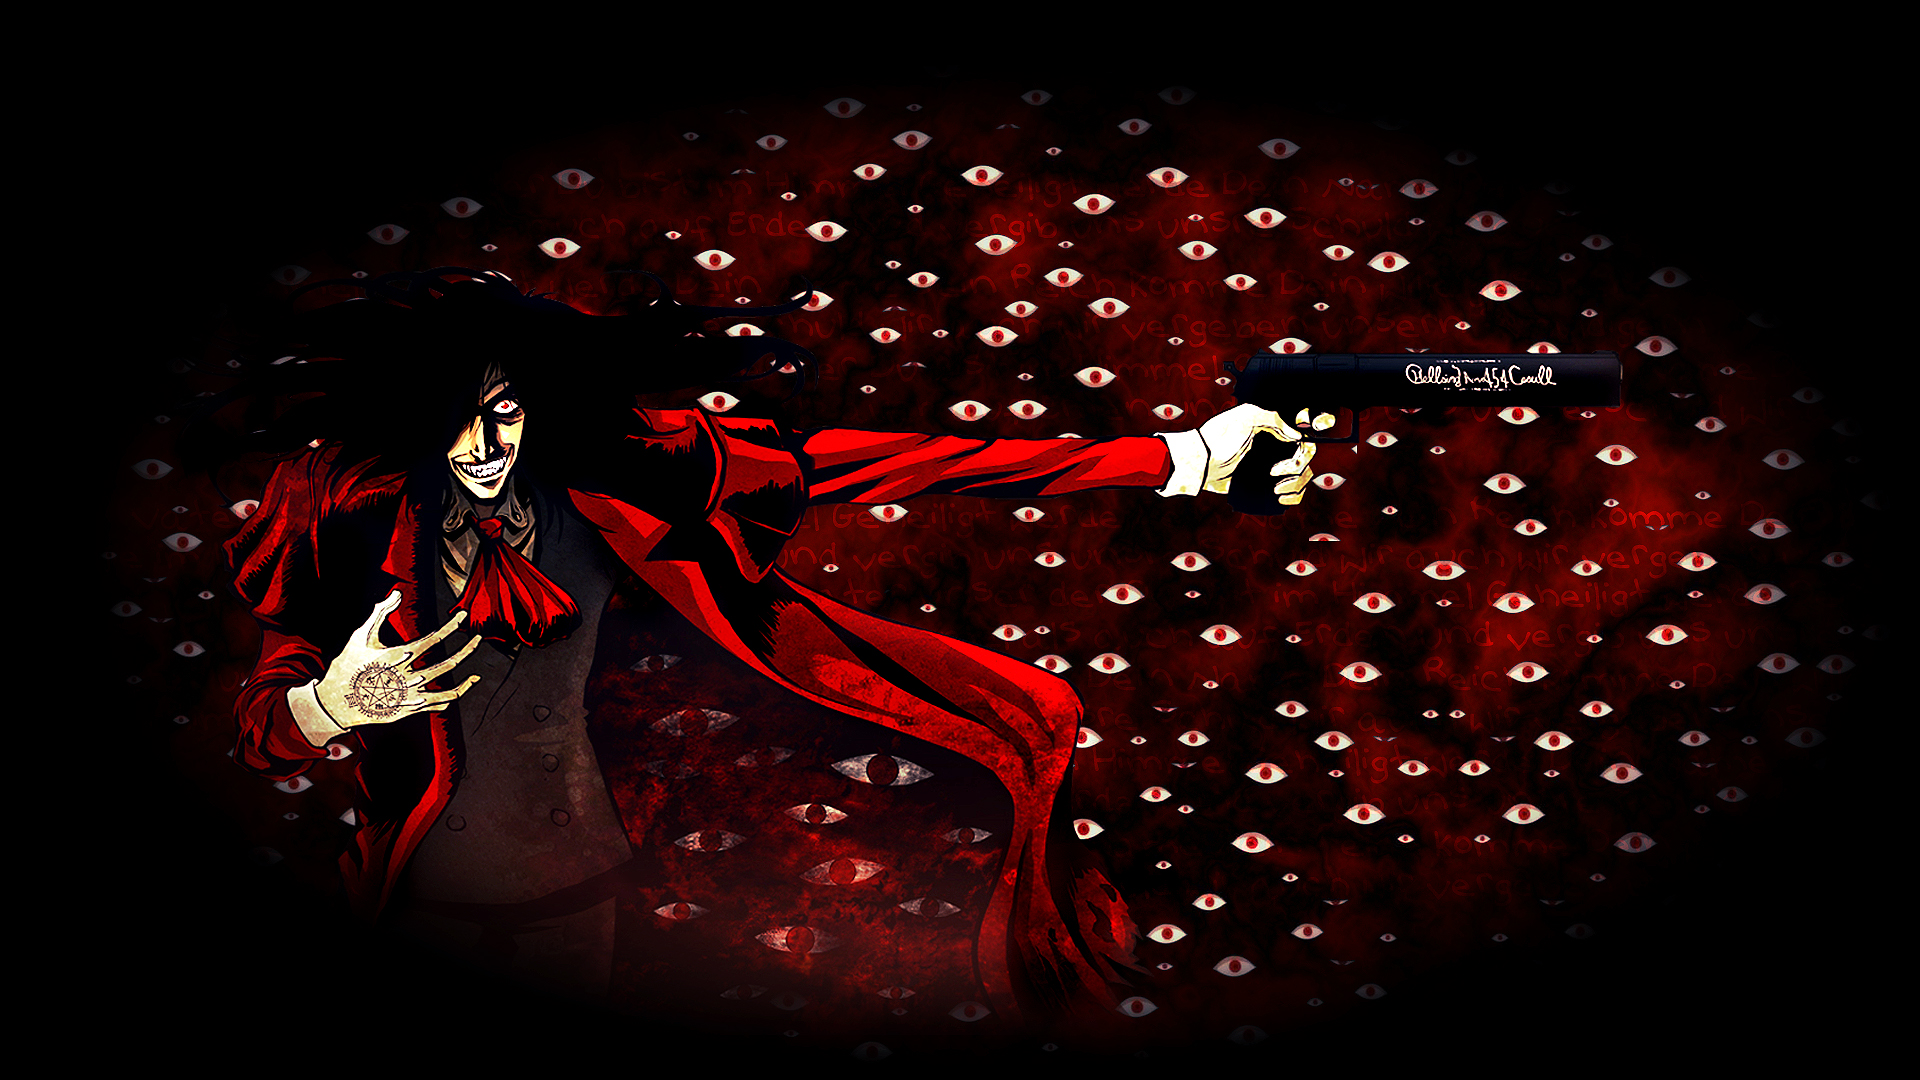 Hellsing full hd wallpaper and background image - Anime hellsing wallpaper ...